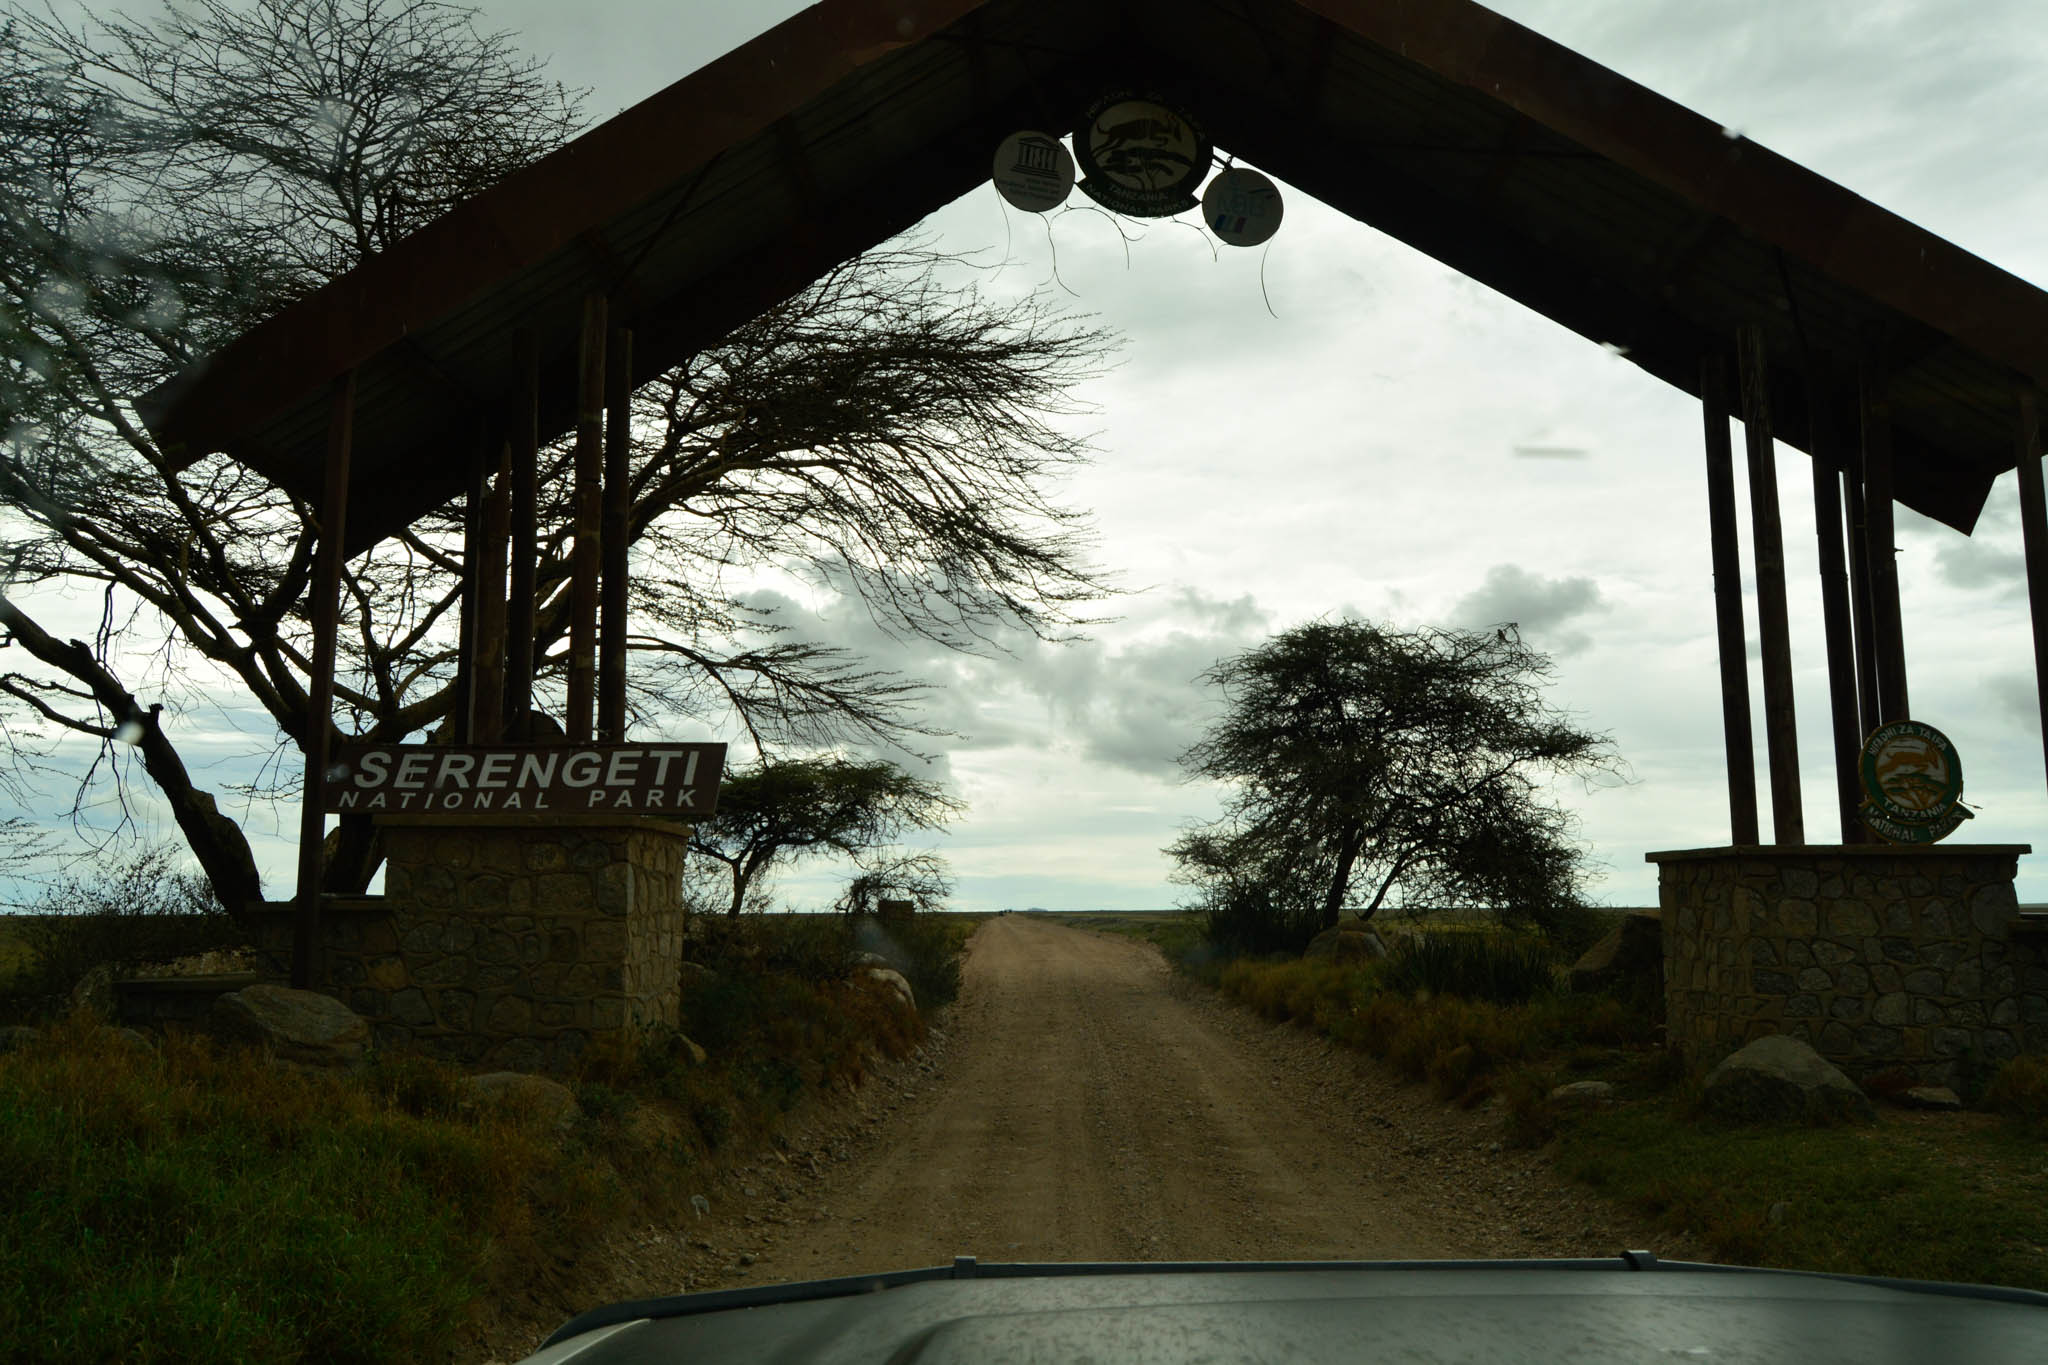 Entrance to the Serengeti